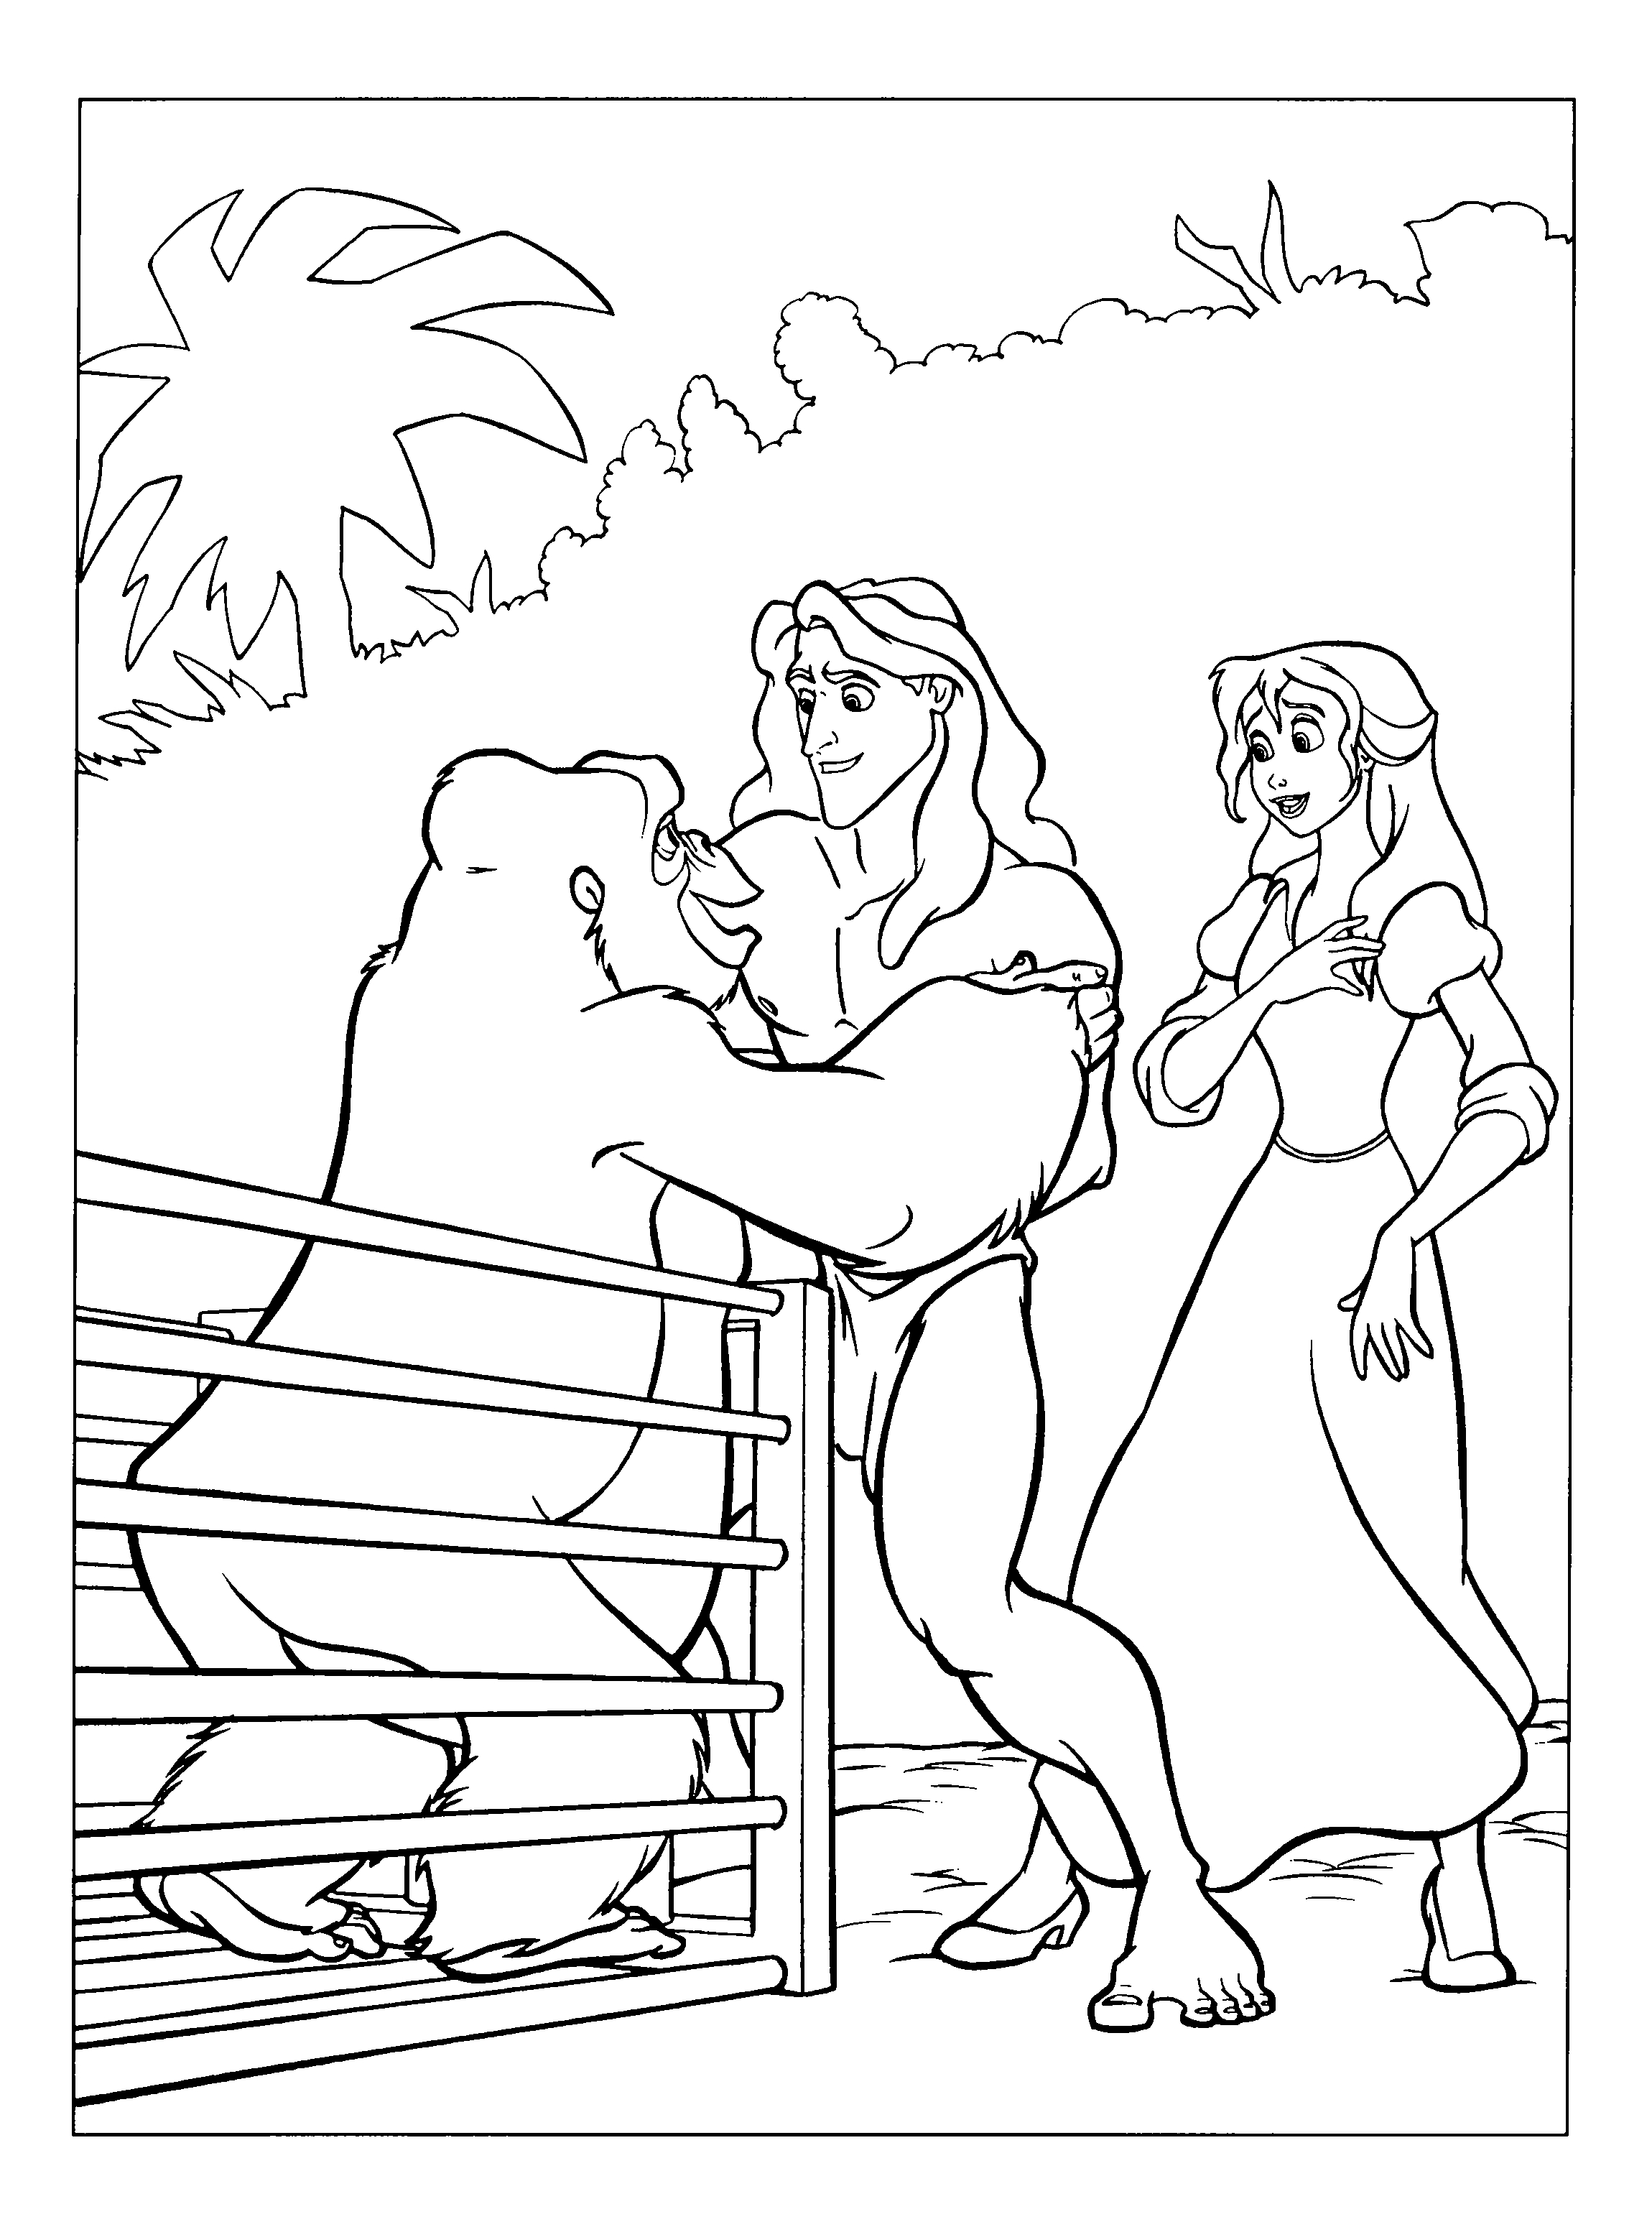 20 Tarzan Coloring Pages Images | FREE COLORING PAGES